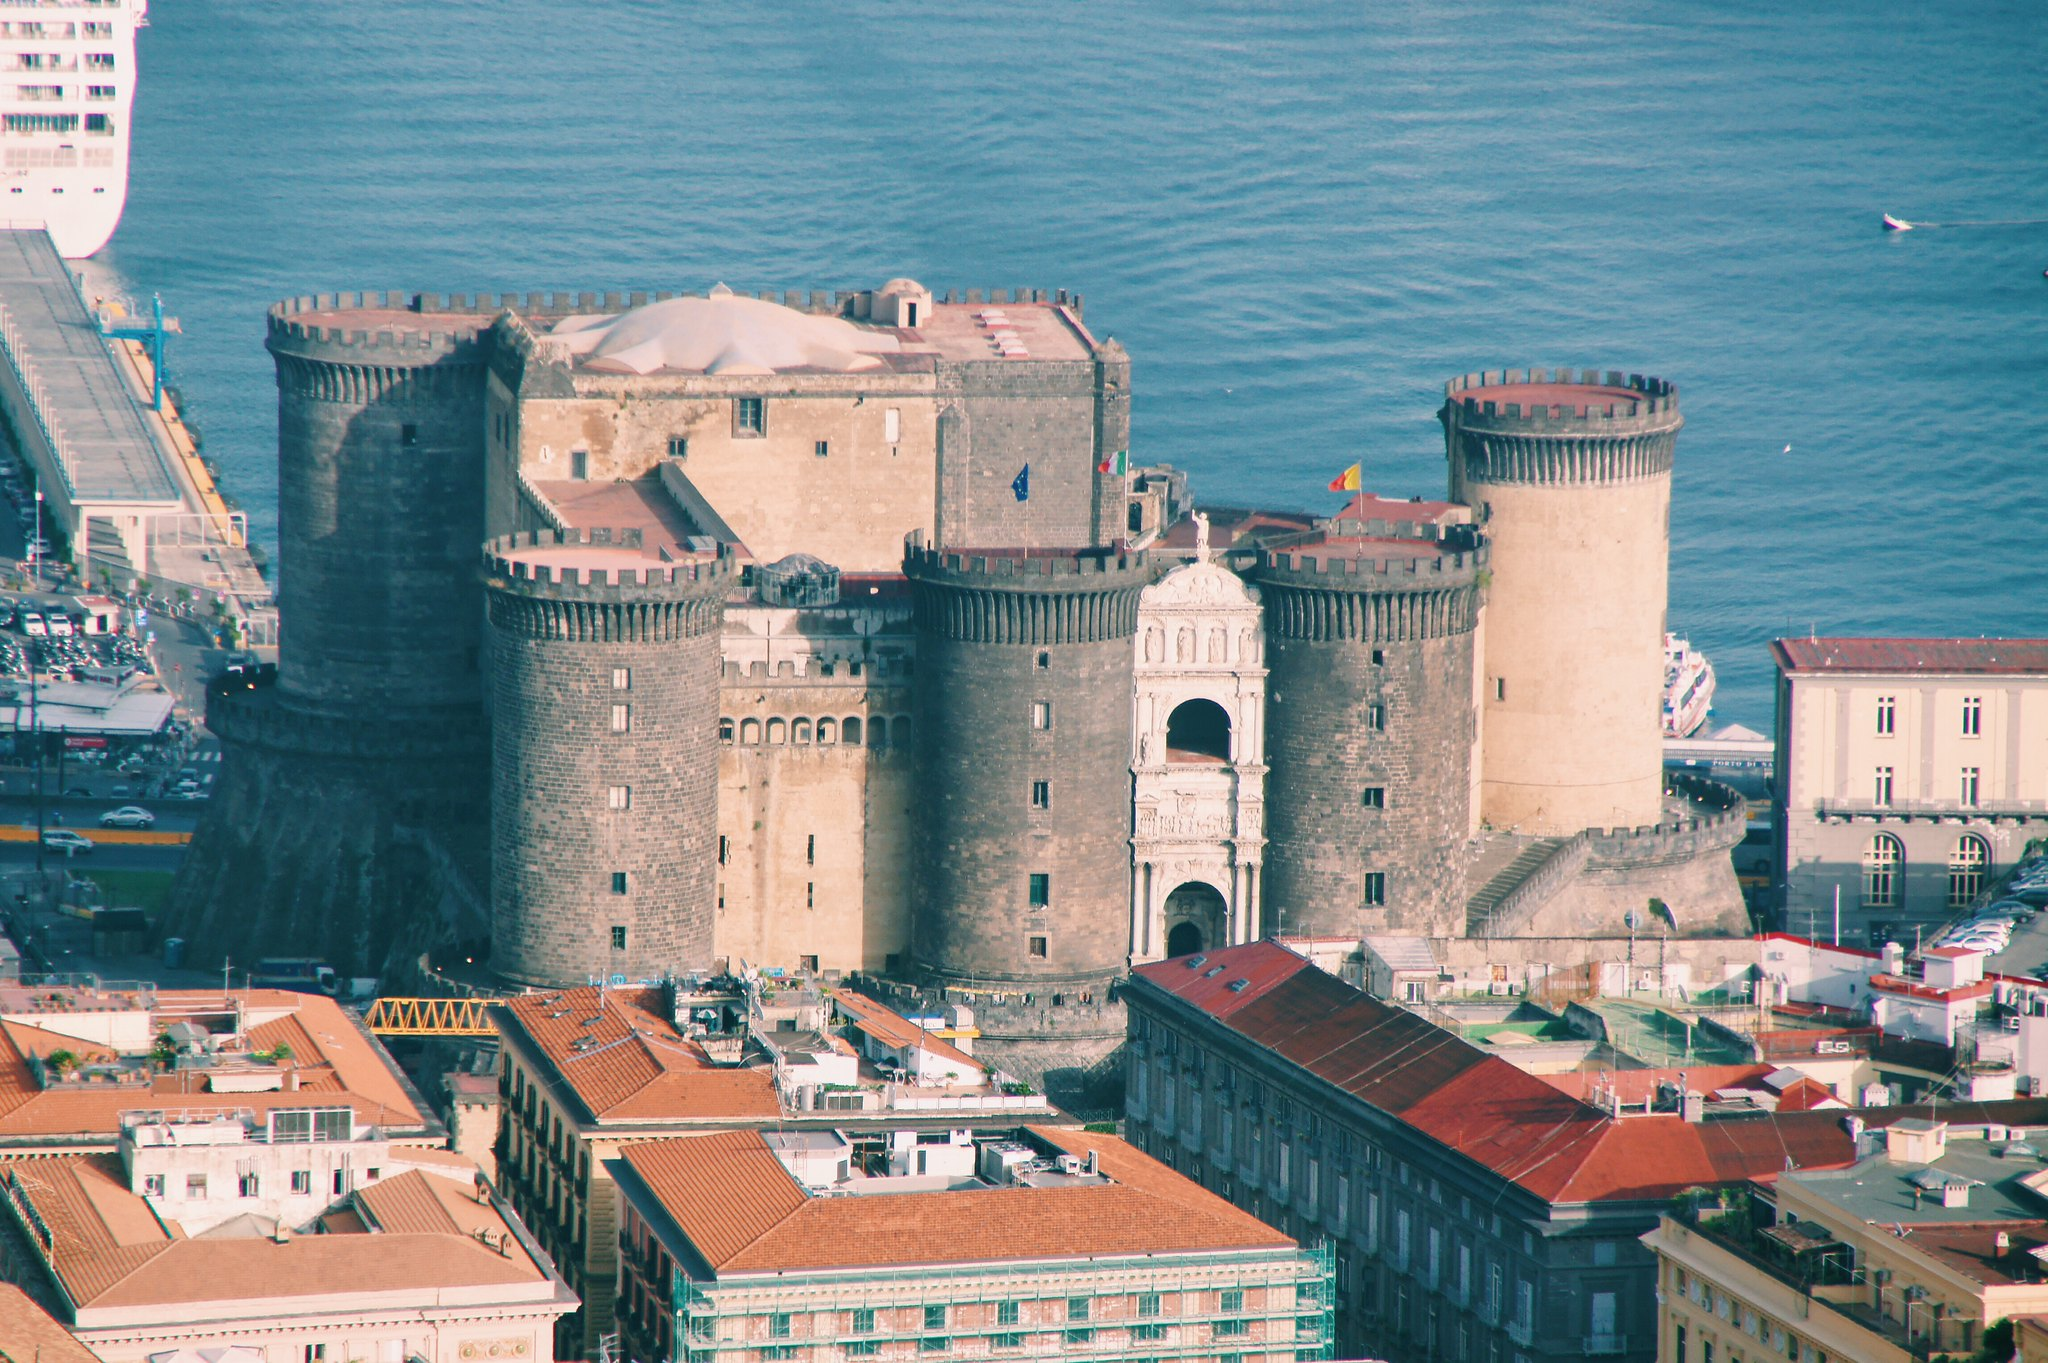 Castel Nuovo, New Castle, view from Saint Elmo Castle, Naples